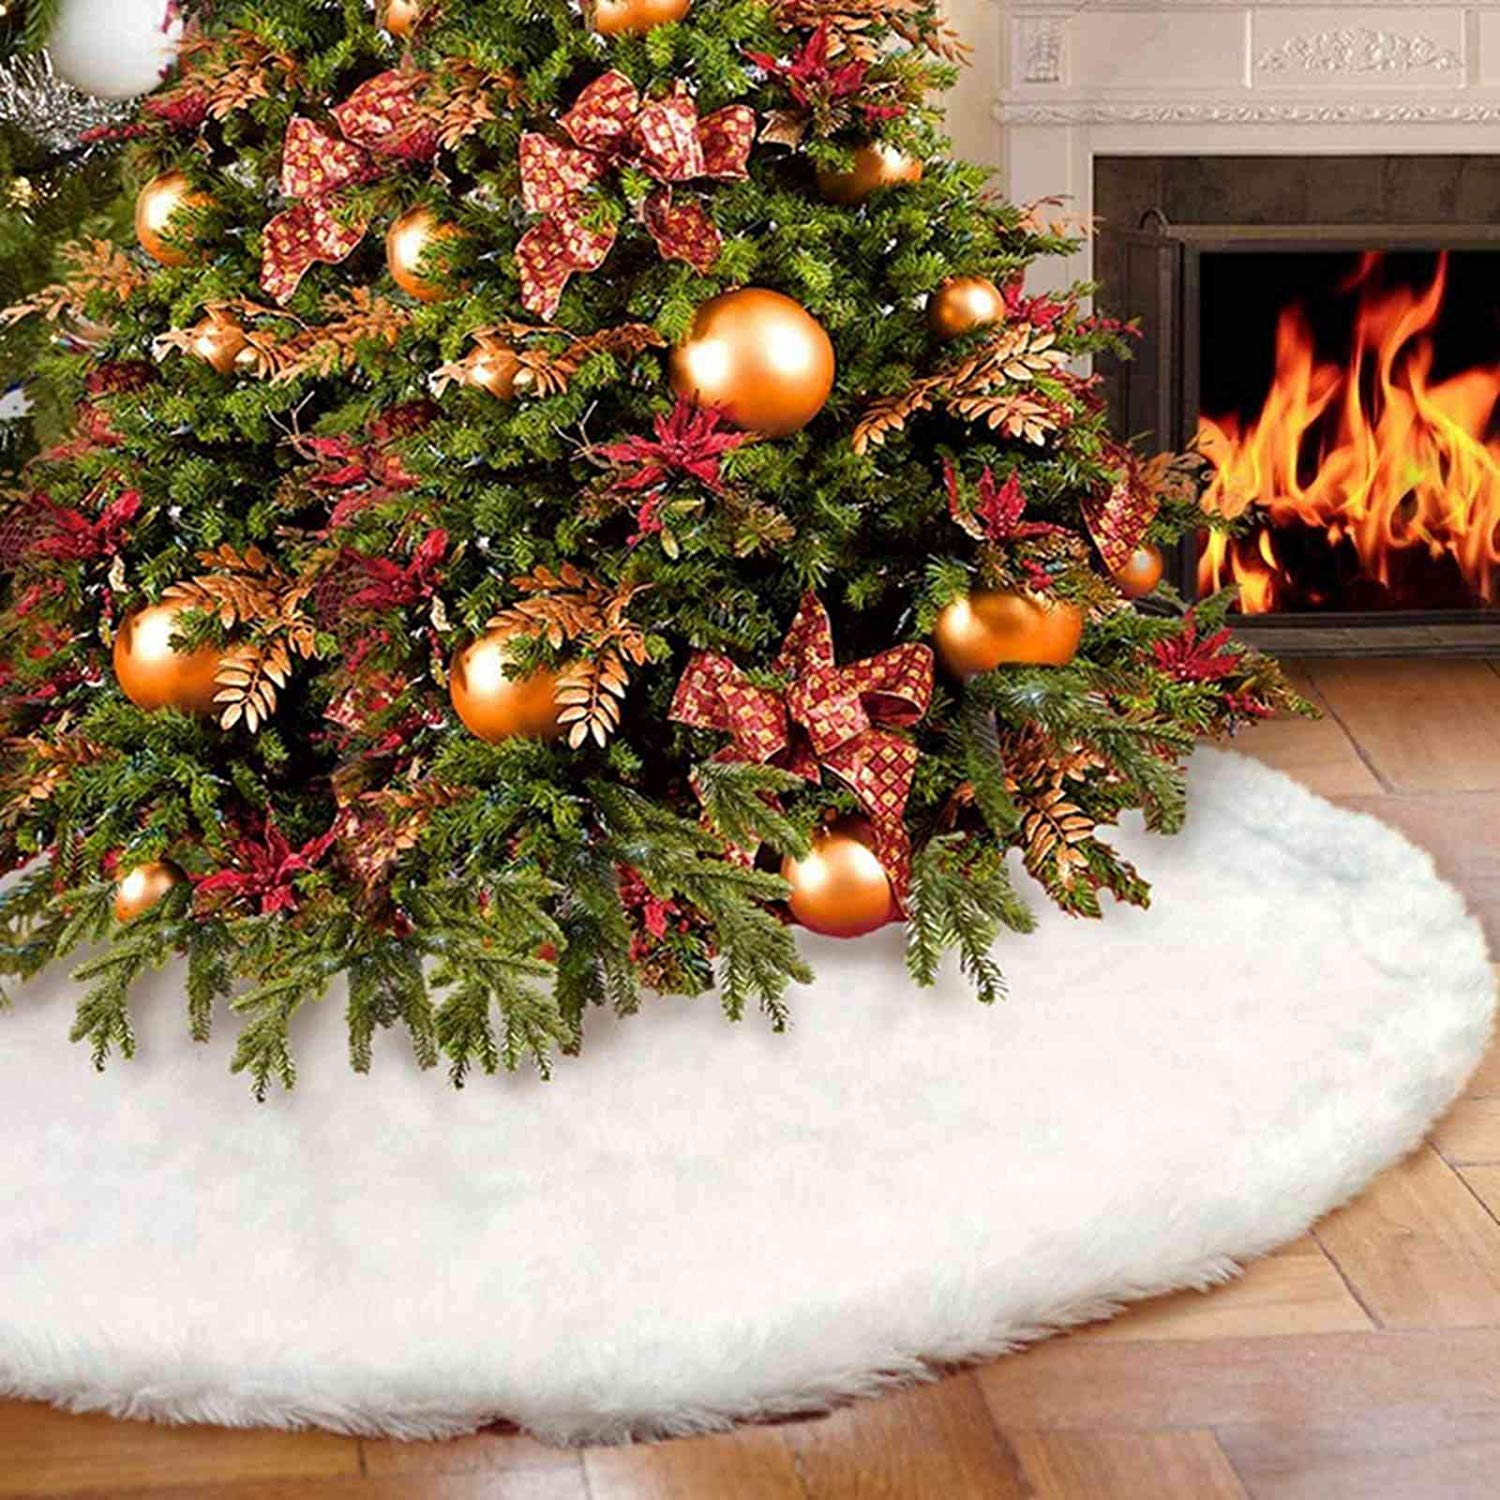 FDY MY Faux Fur Christmas Tree Skirt 36 inches Elegant Pure White Xmas Holiday Tree Skirts for Christmas Tree Decorations DQS-4